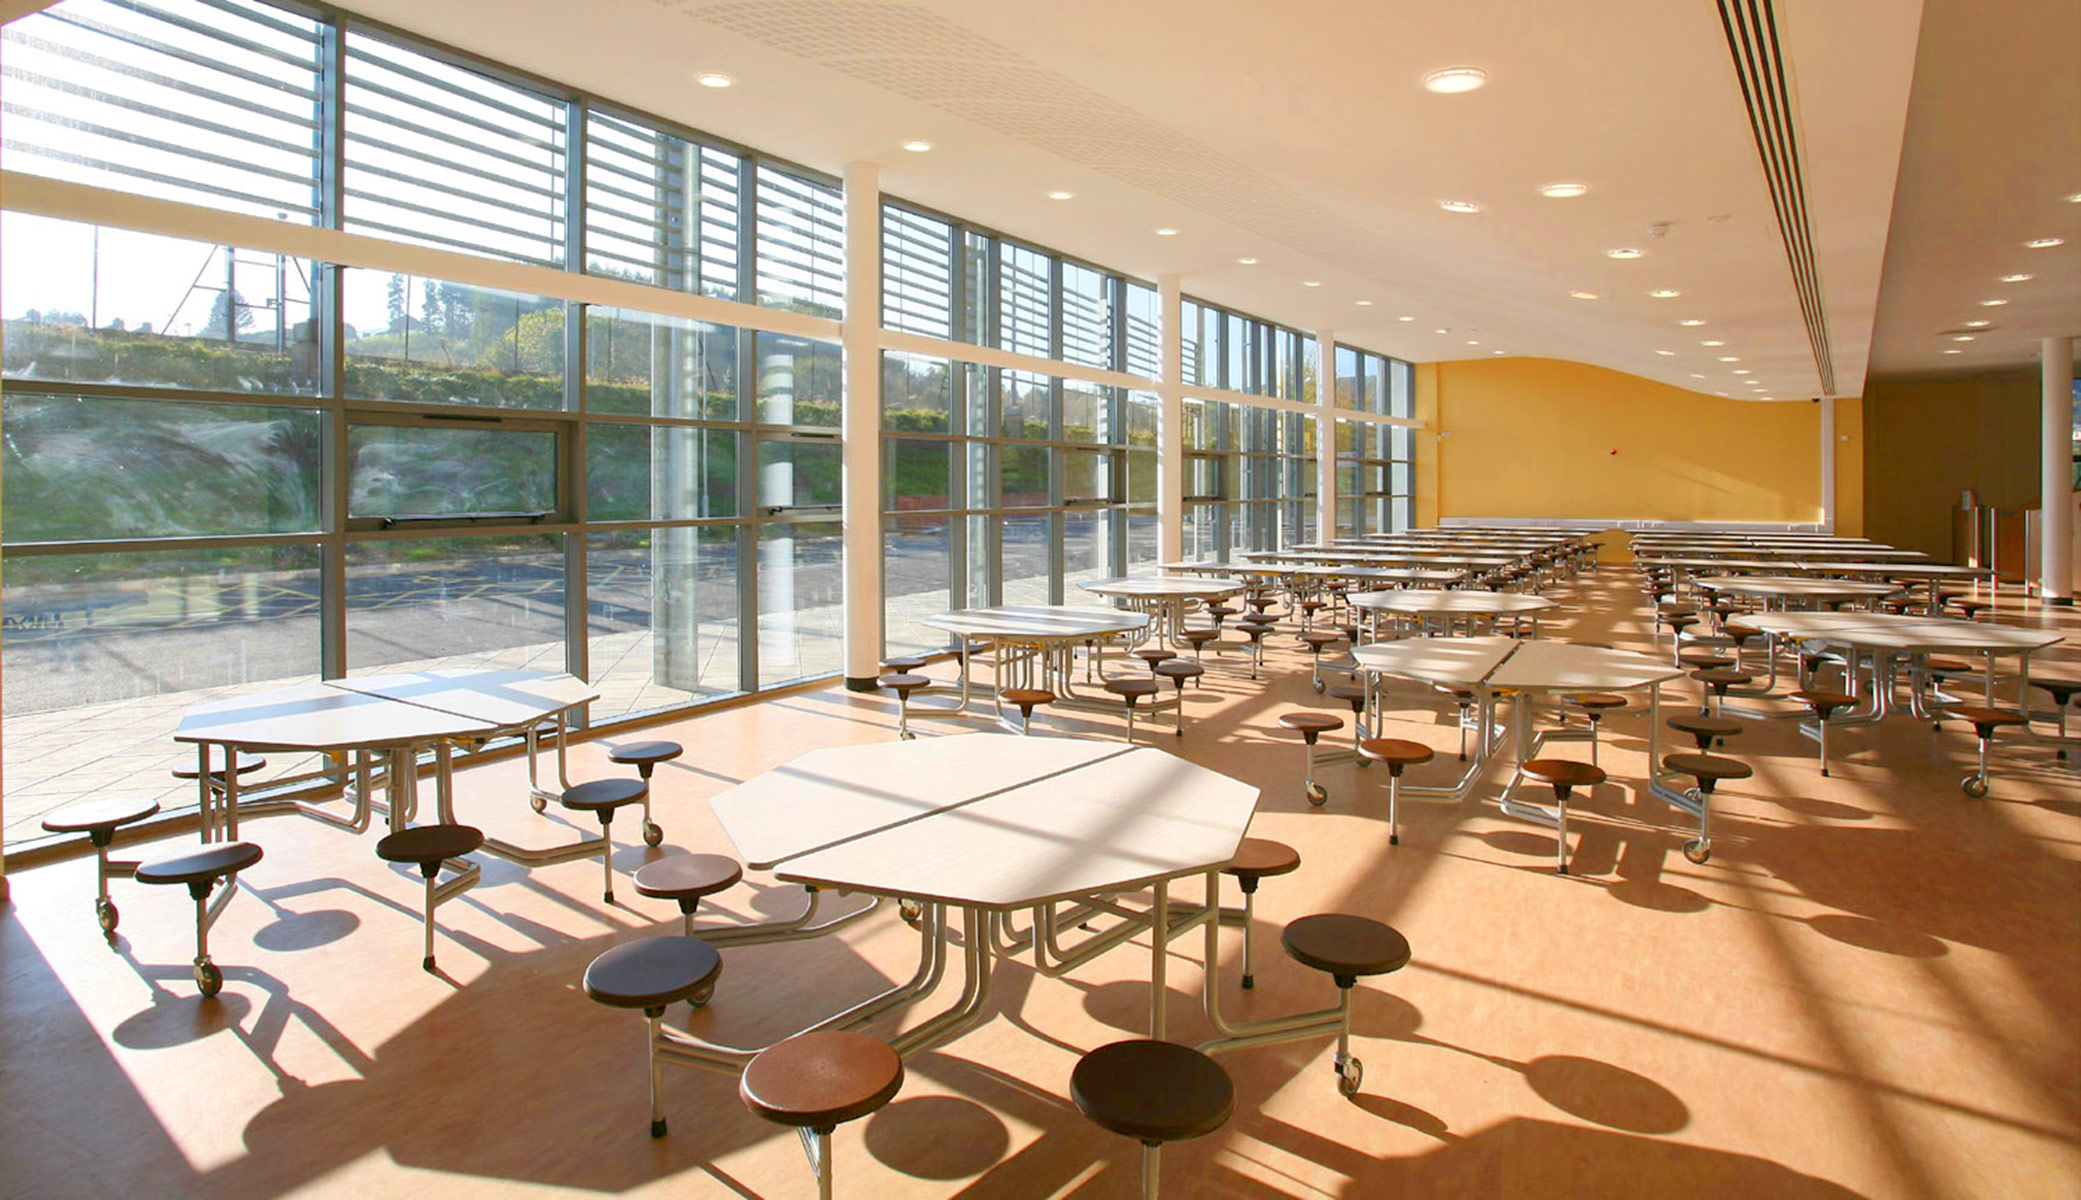 West Monmouth School / Powell Dobson Architects